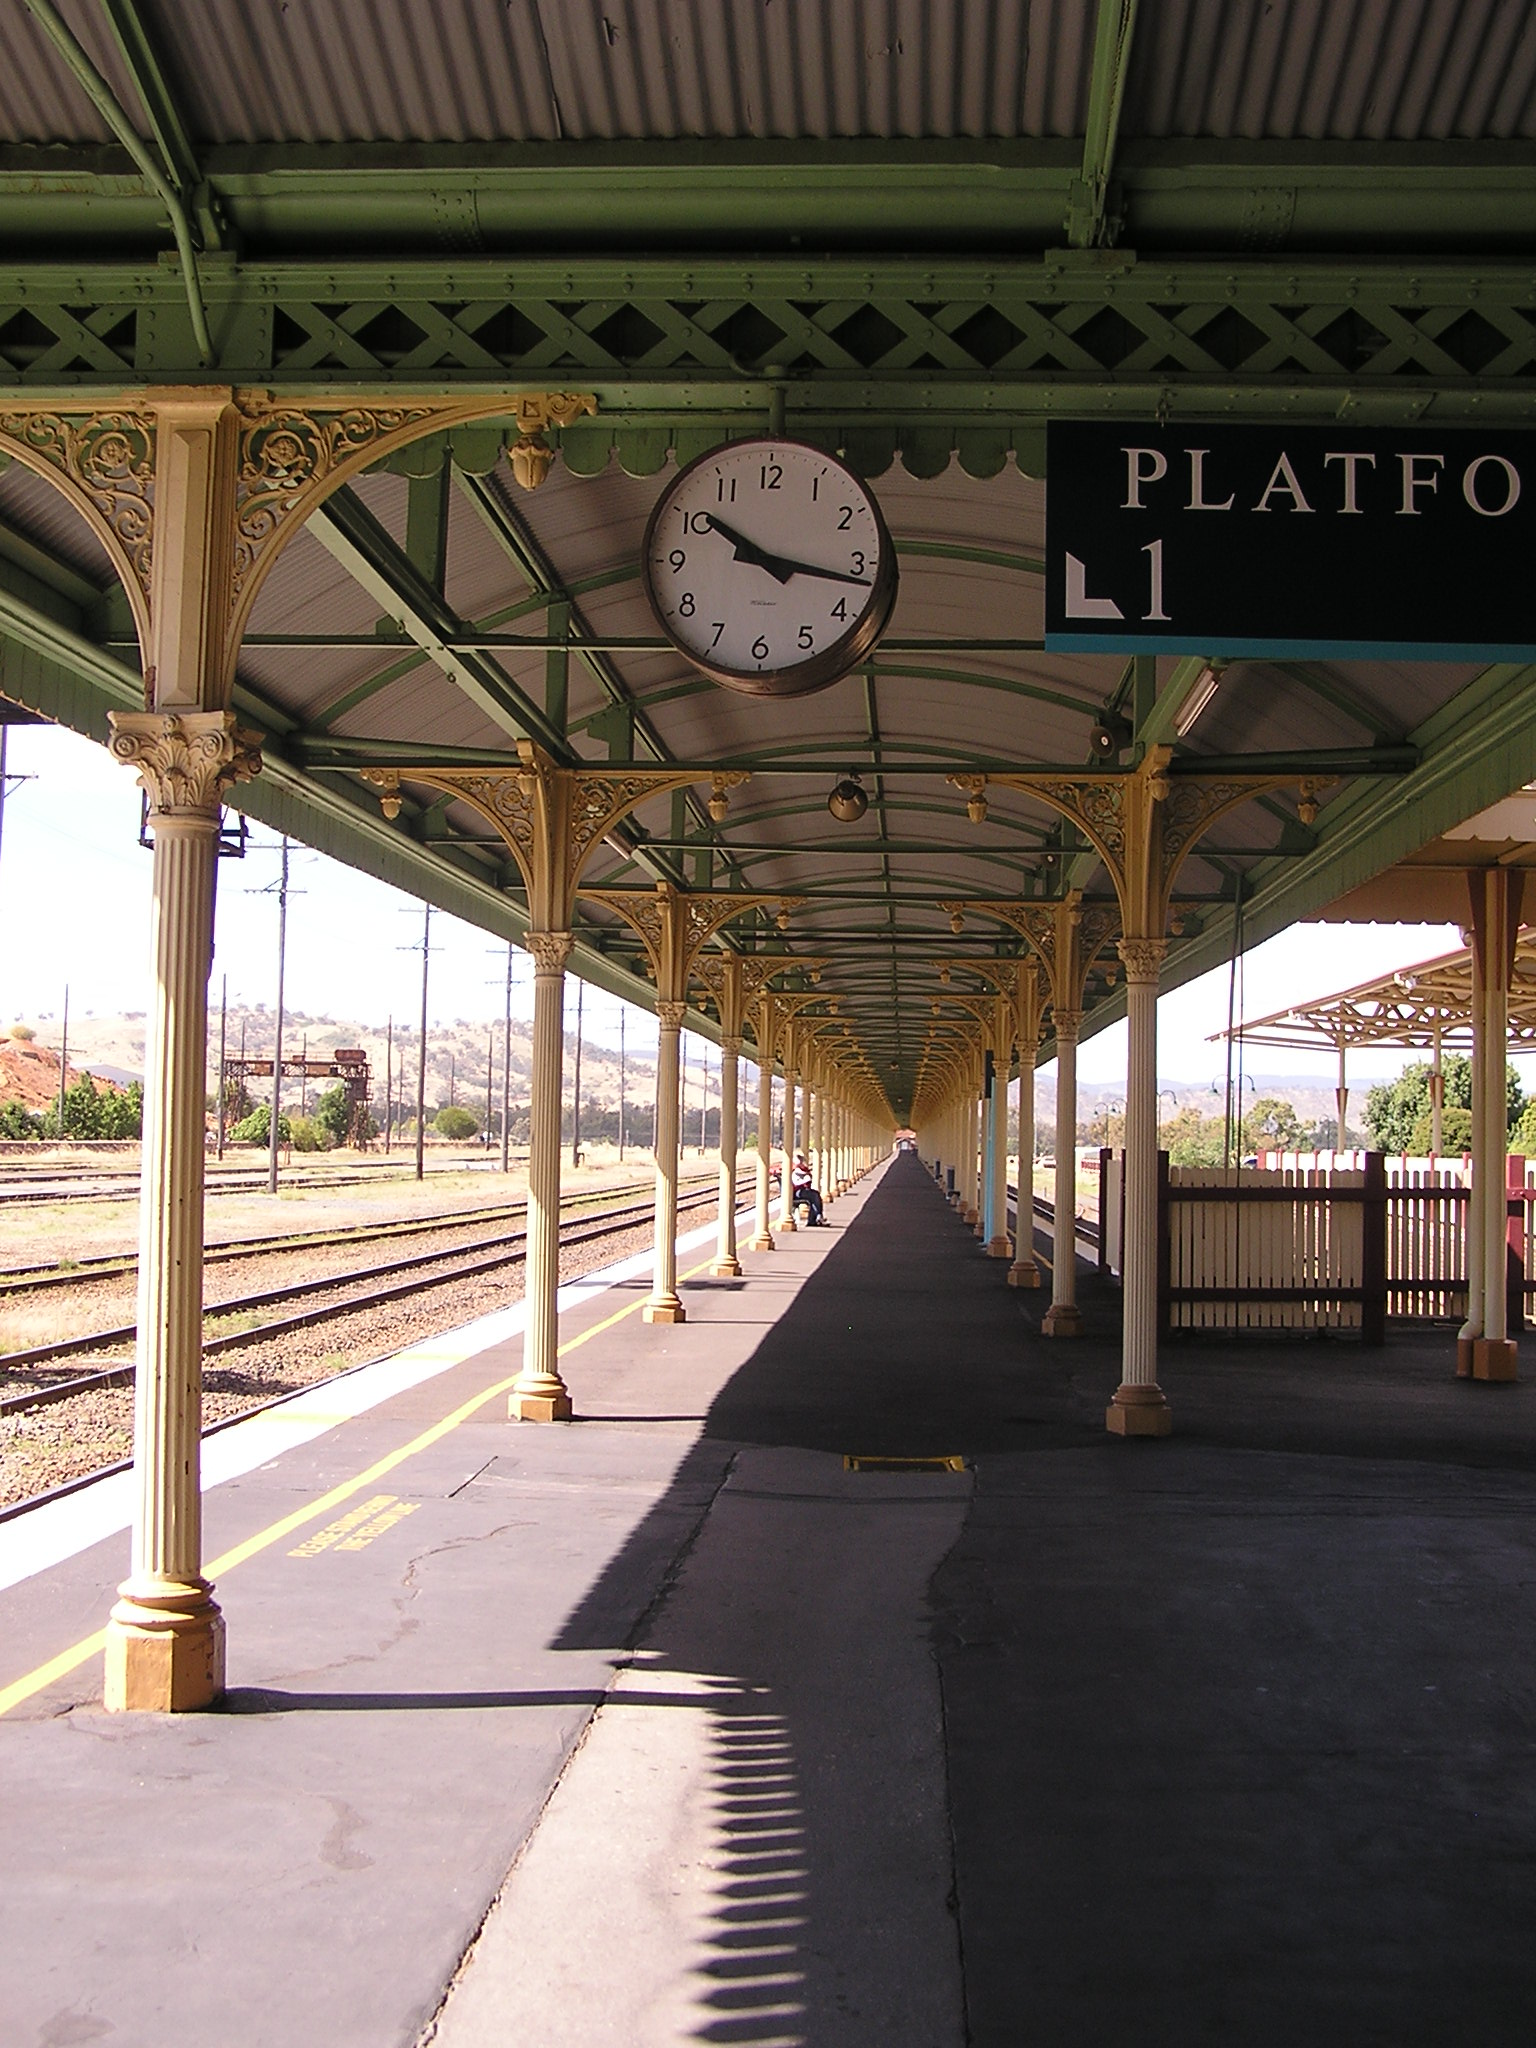 Main Southern railway line, New South Wales